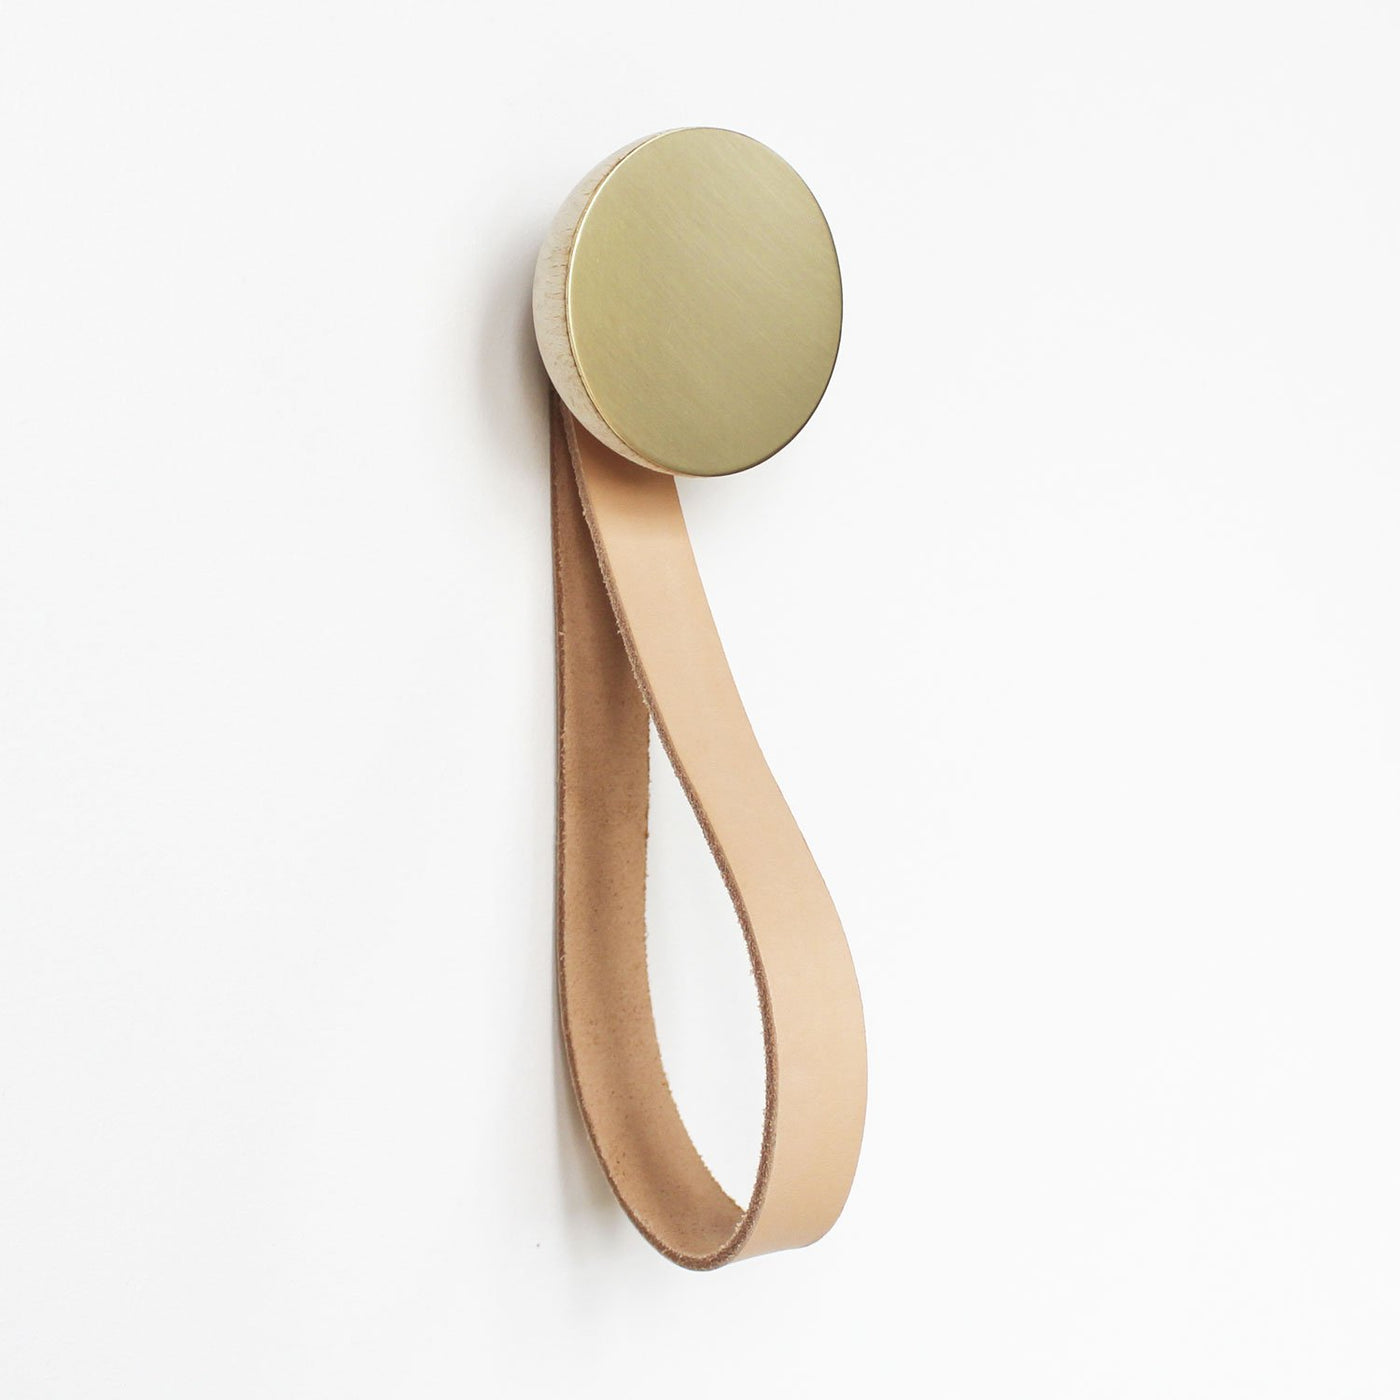 round beech wood and brass hook with leather loop